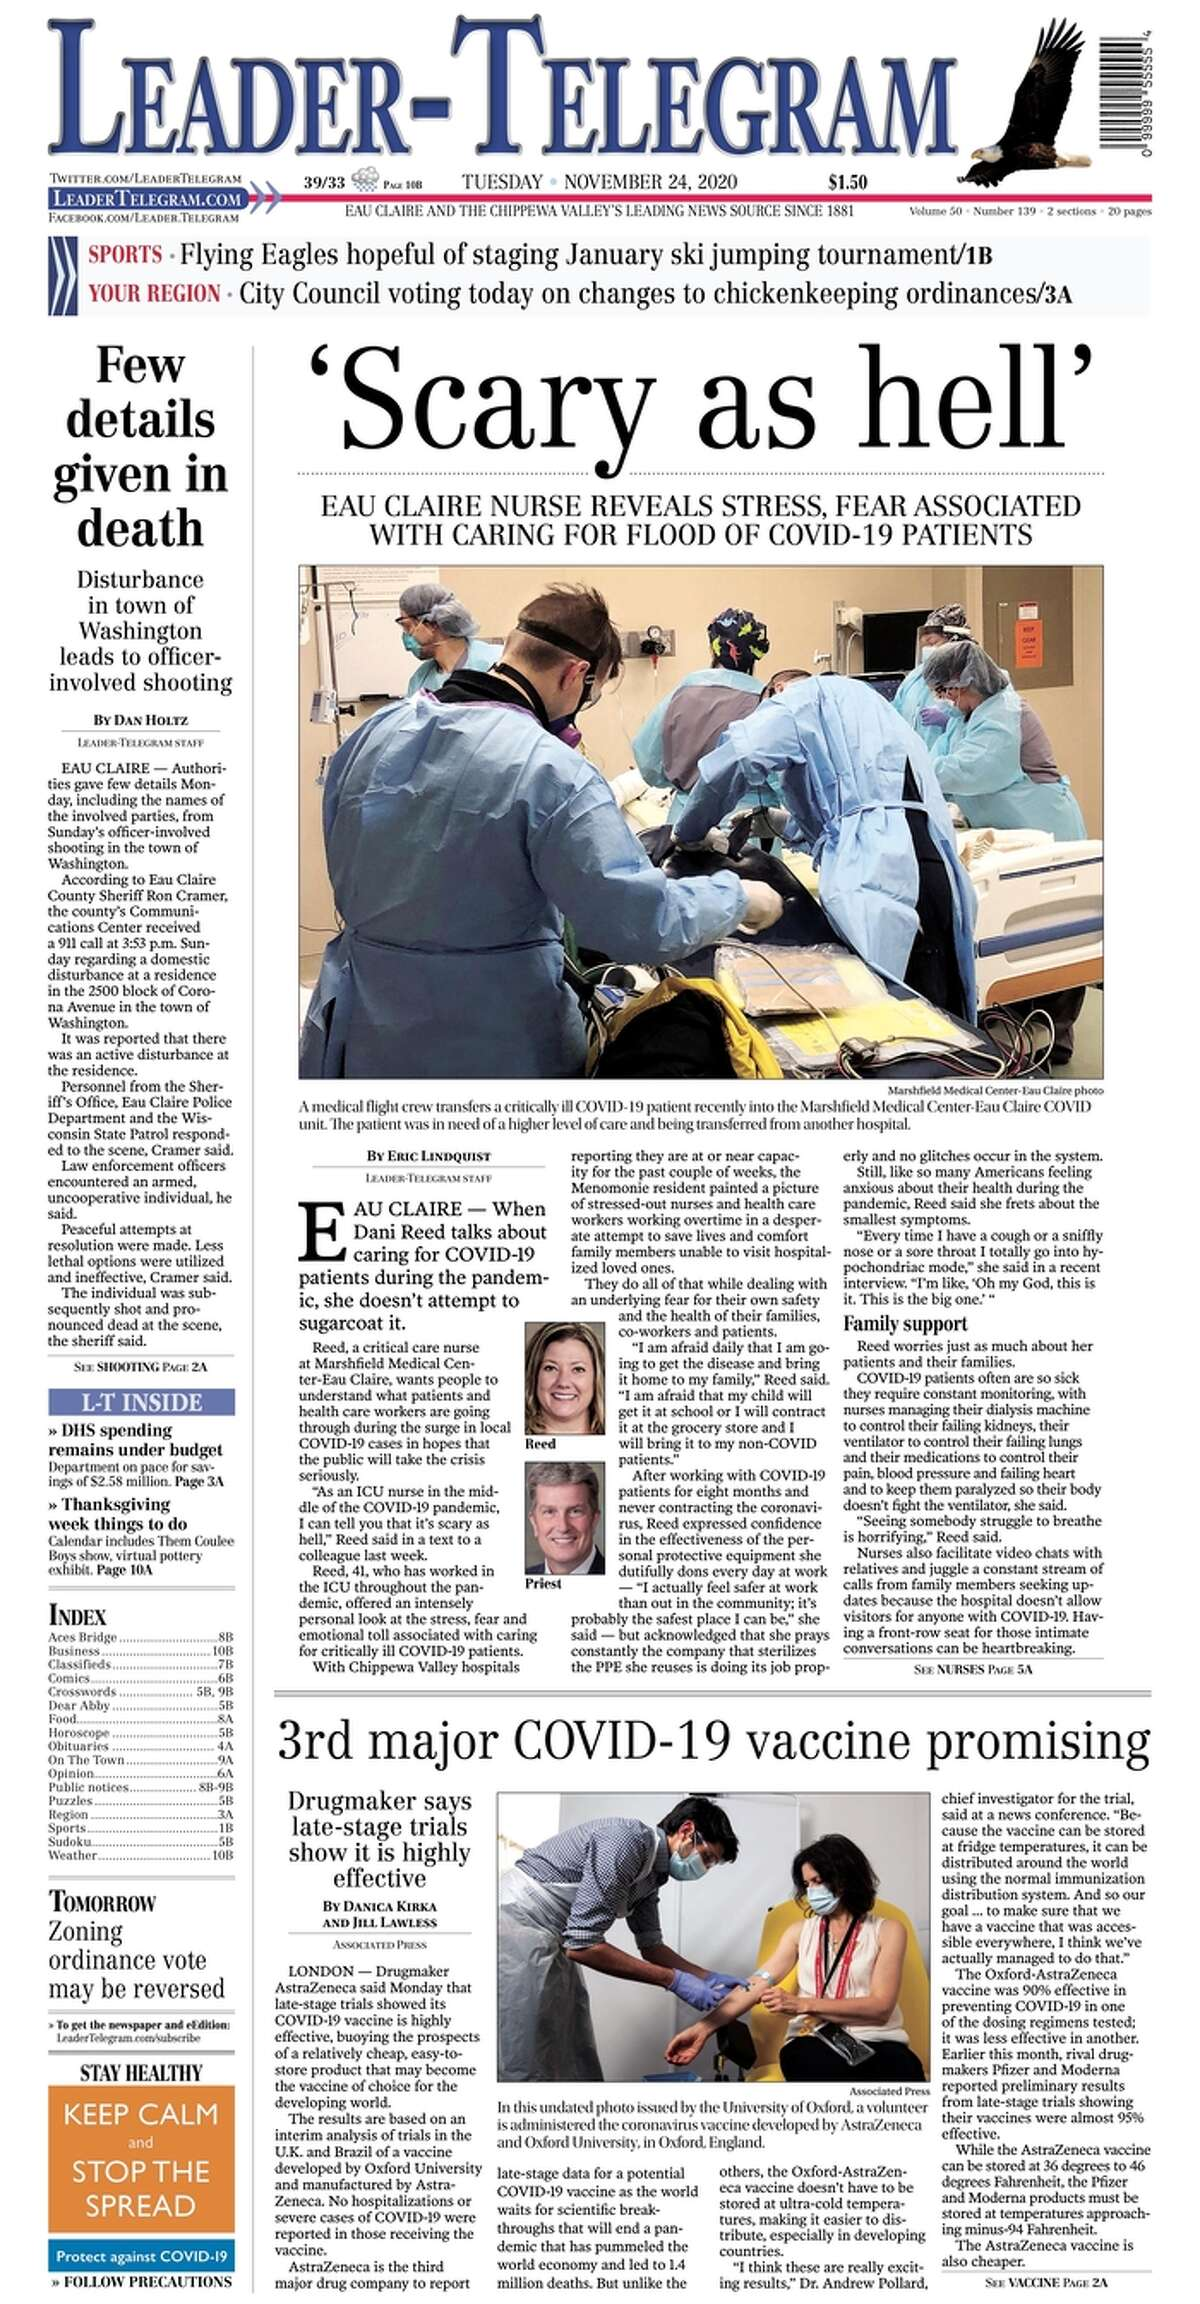 The front page of theLeader-Telegram, a Wisconsin newspaper focused on the Eau Claire and Chippewa Valley, on Nov. 24, 2020.